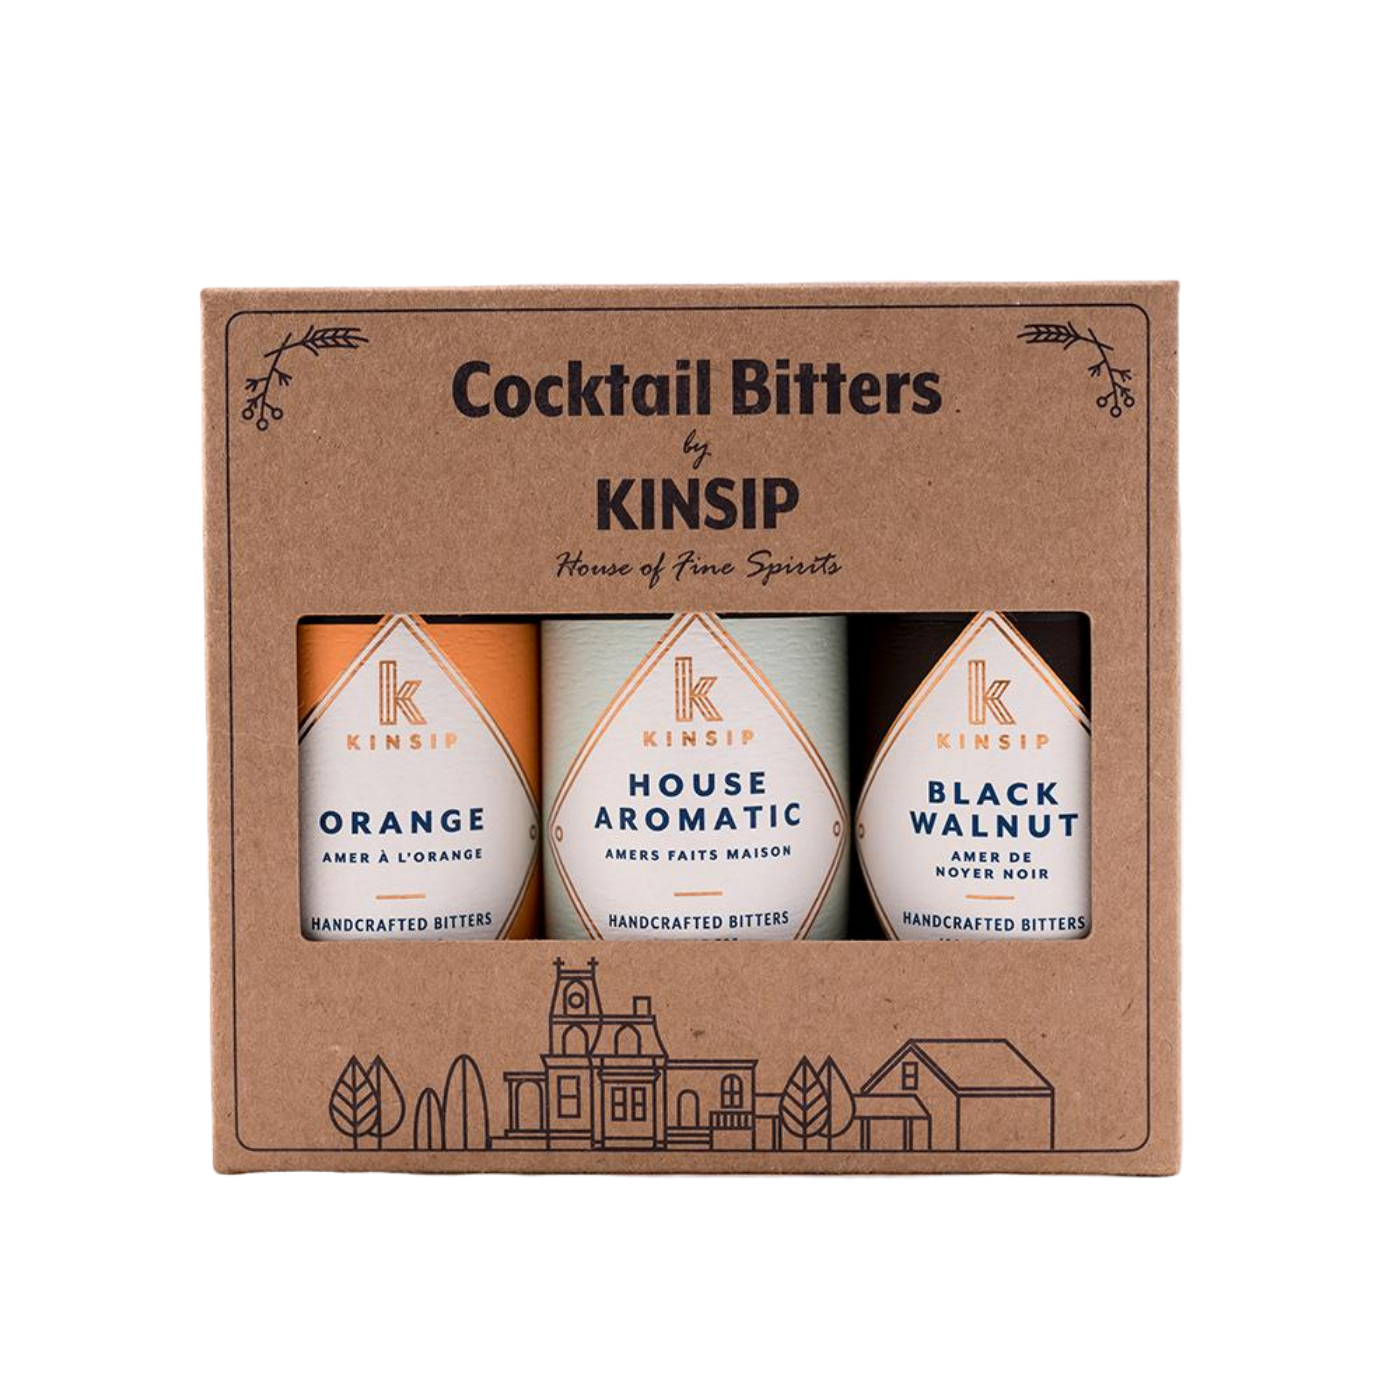 Kinsip New Old Fashioned Bitters Gift Pack